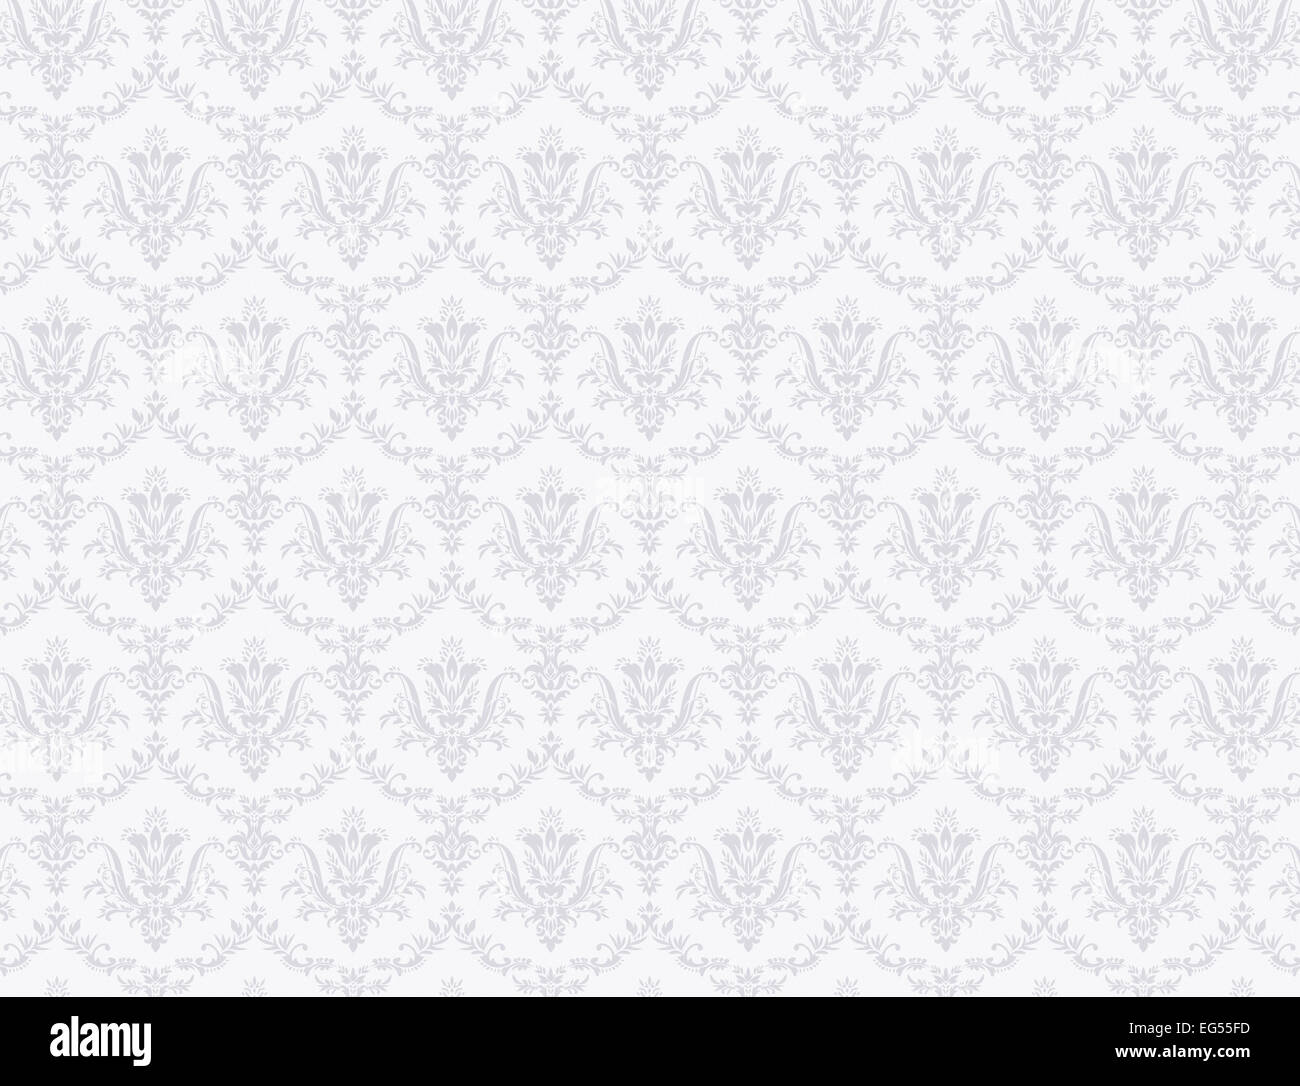 luxury silver seamless floral wallpaper stockfotos luxury silver seamless floral wallpaper. Black Bedroom Furniture Sets. Home Design Ideas